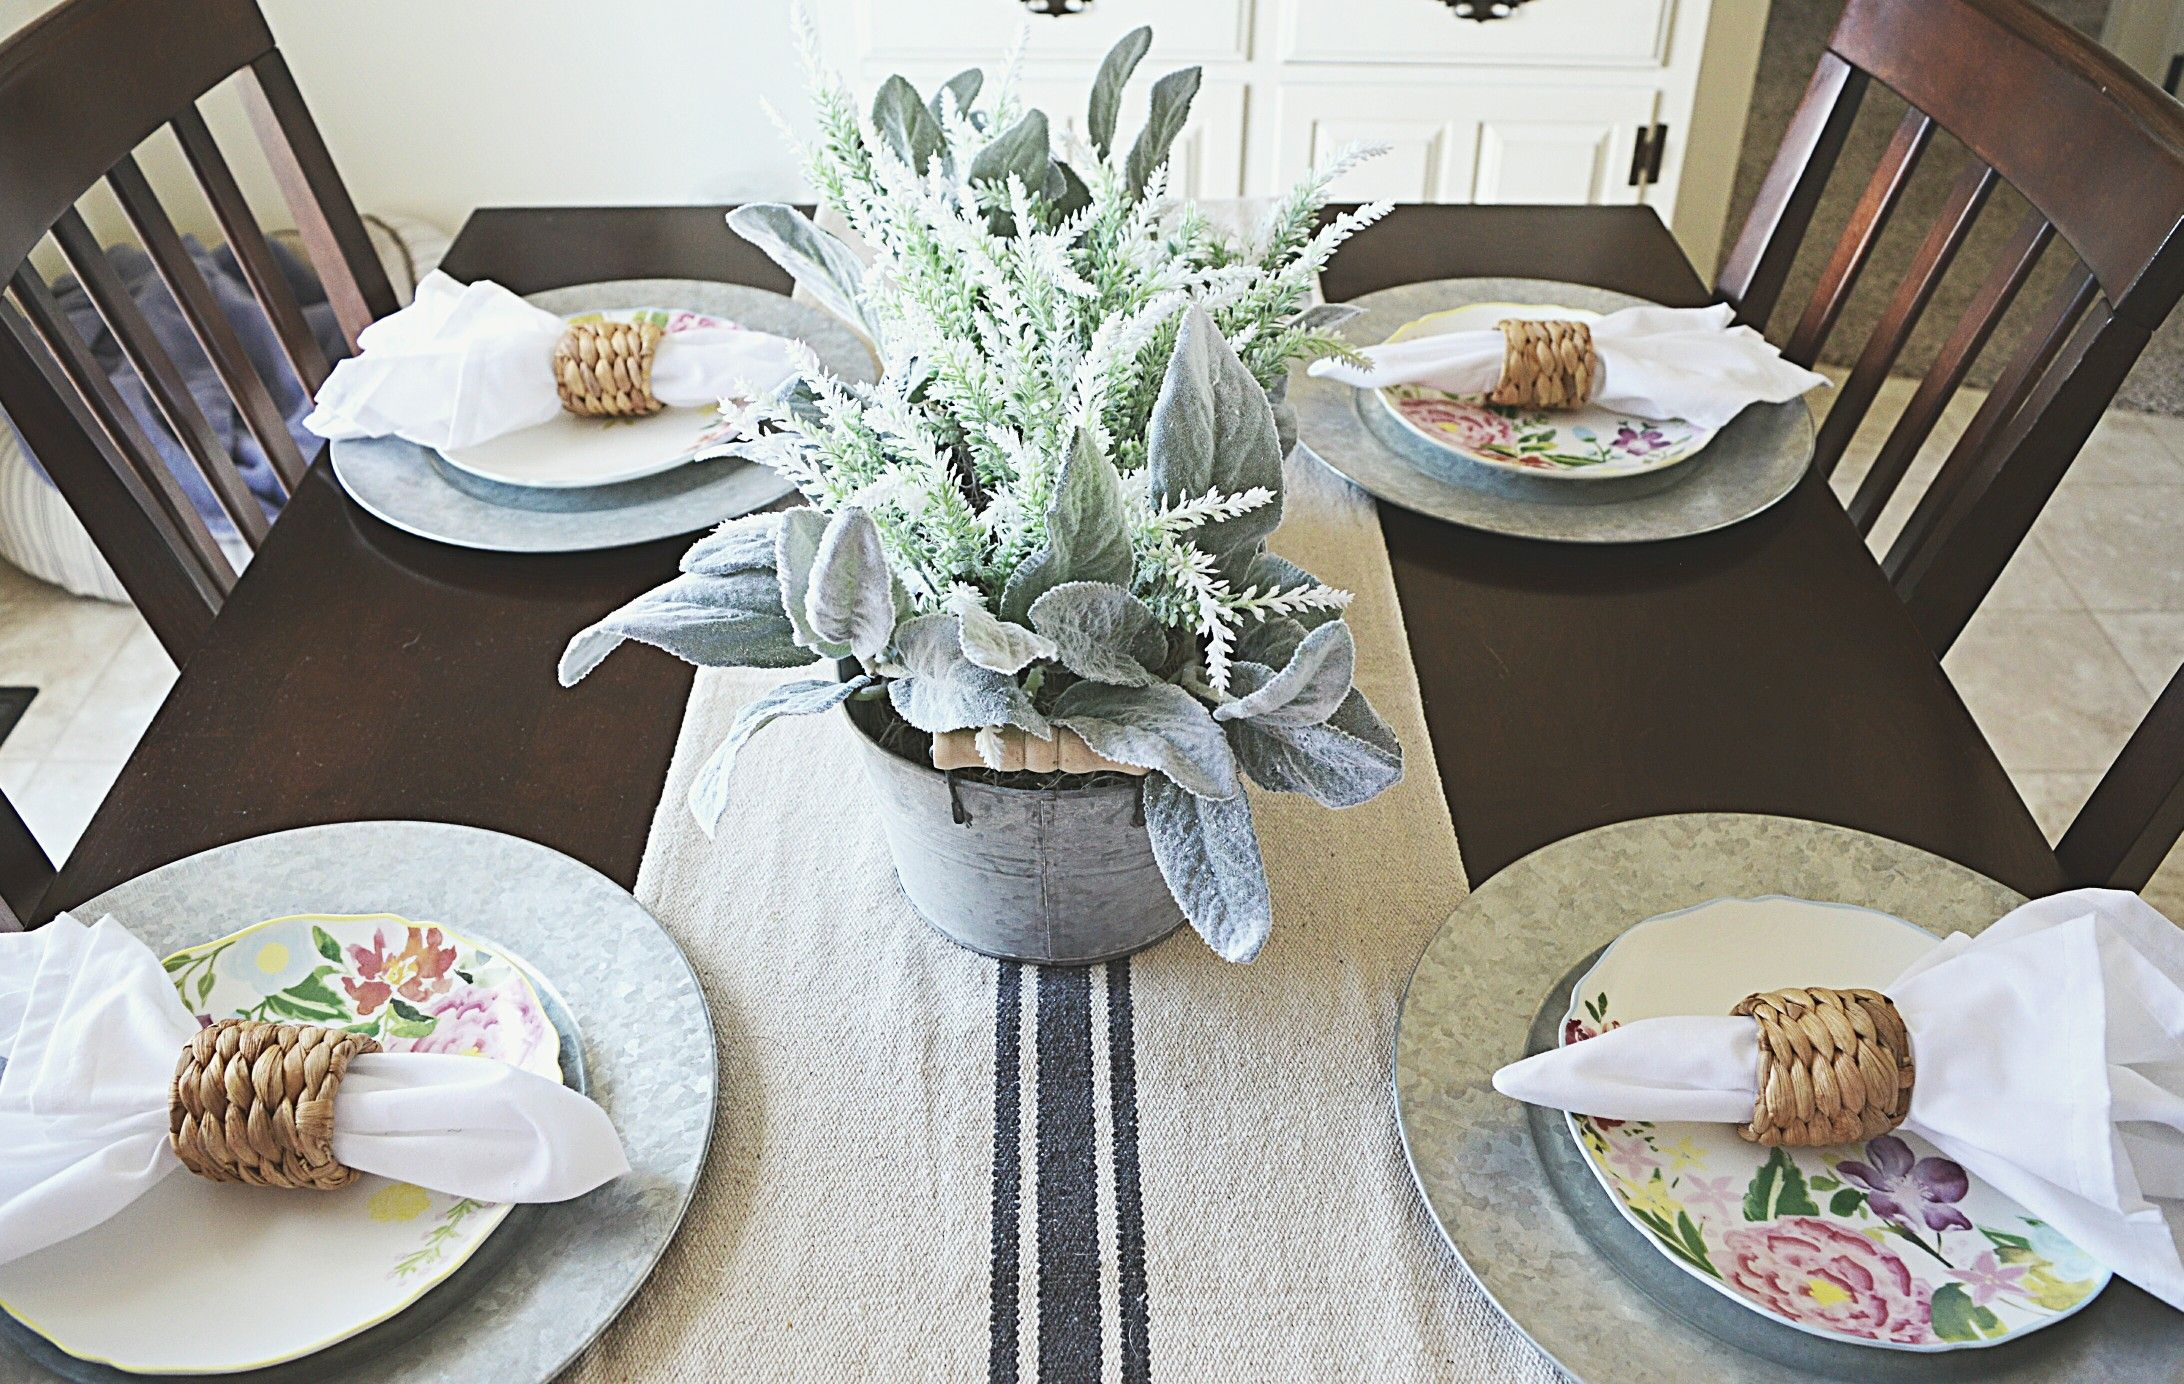 Farmhouse Kitchen Table Spring Decor Spring Plates Michael S Diy Florals Dining Table Ideas Farmhouse Kitchen Tables Kitchen Table Spring Decor